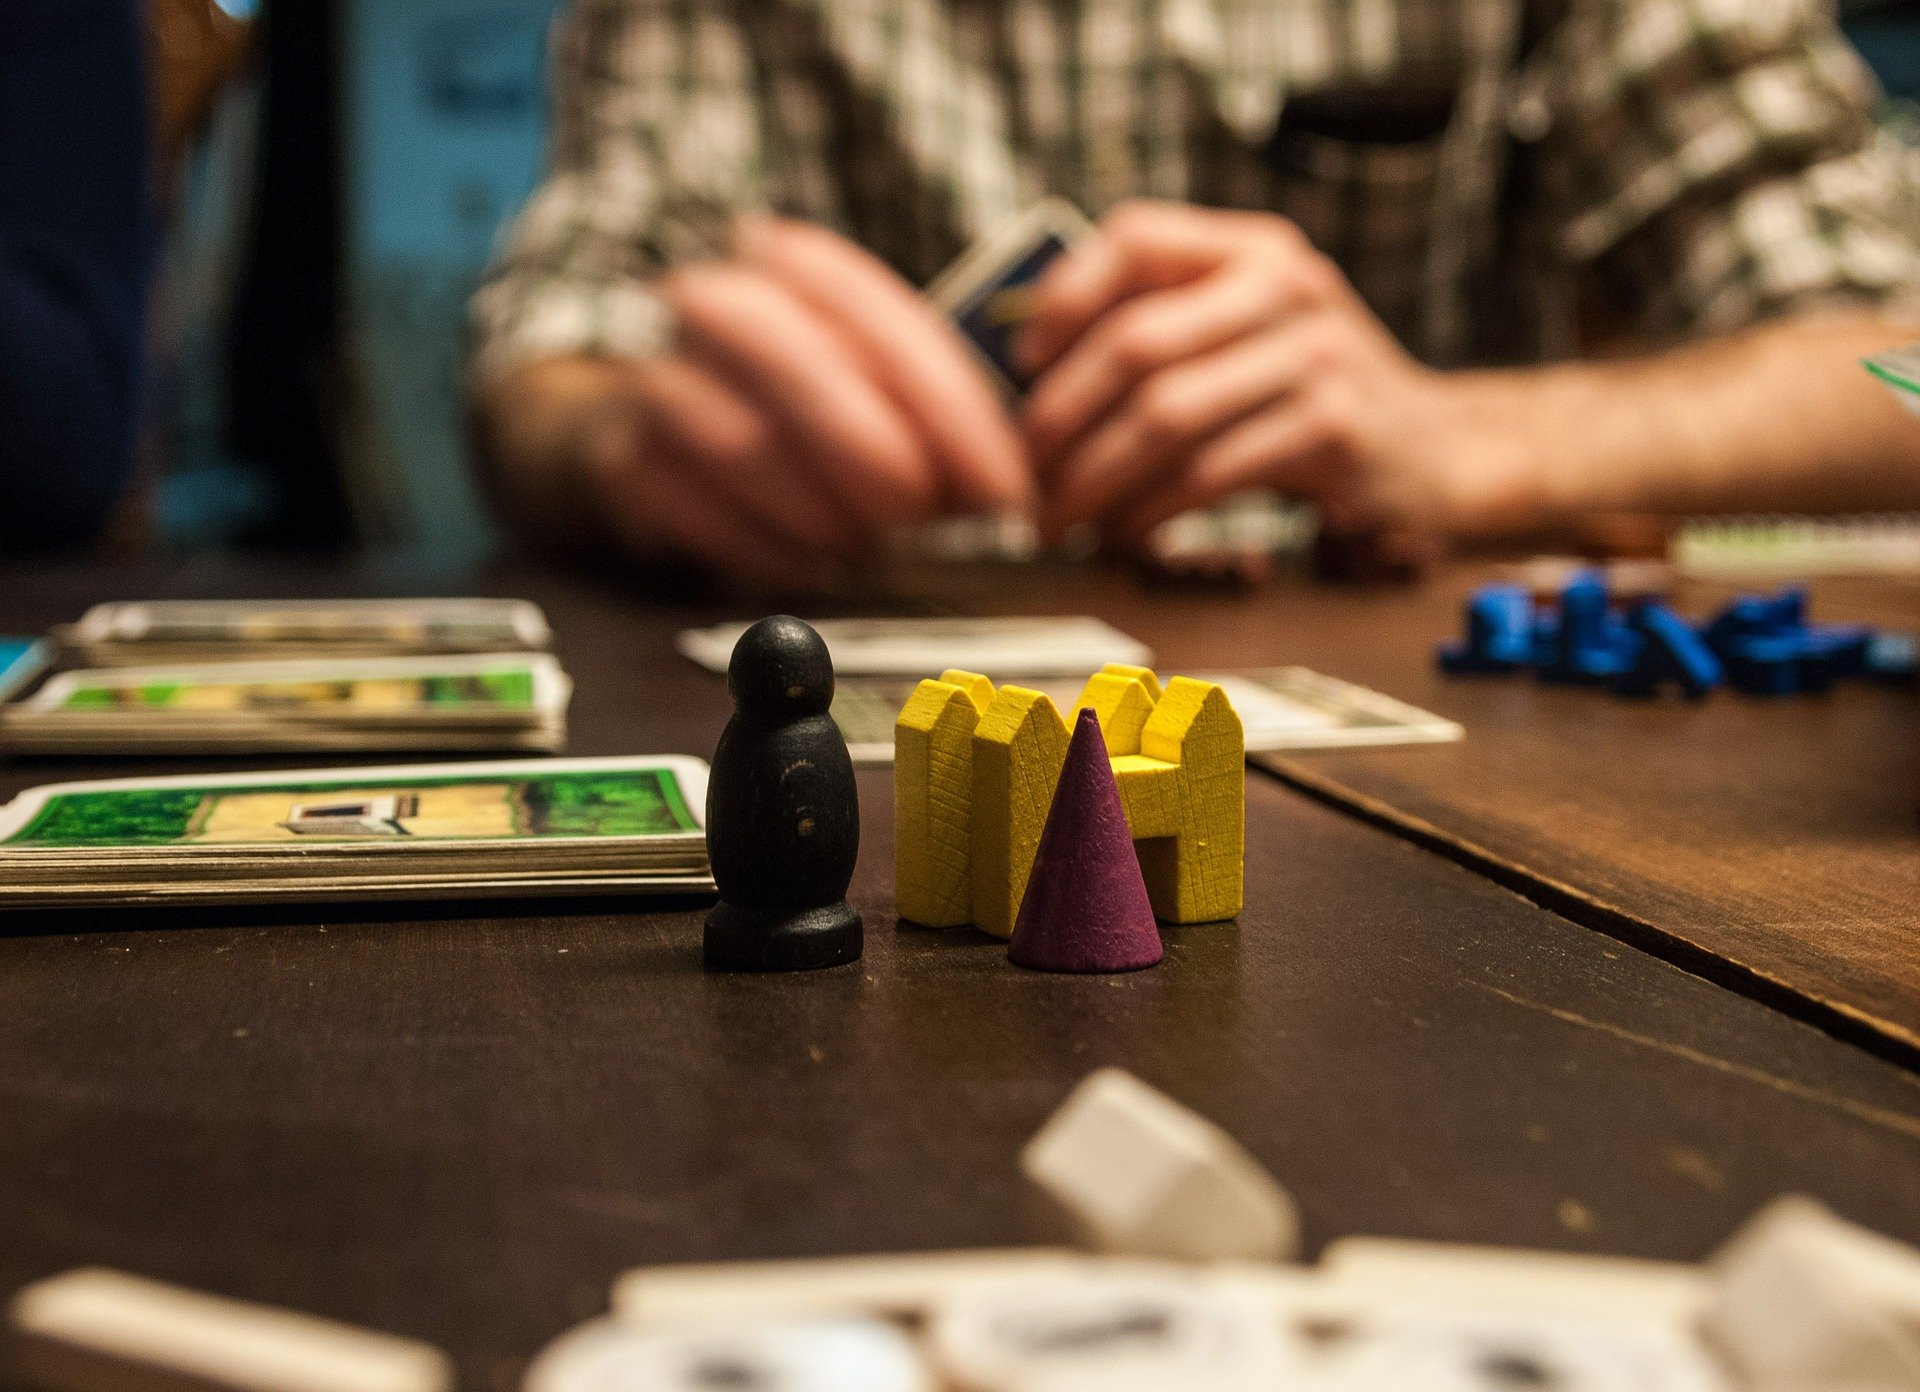 14 bar games activities and event ideas to entertain your guests